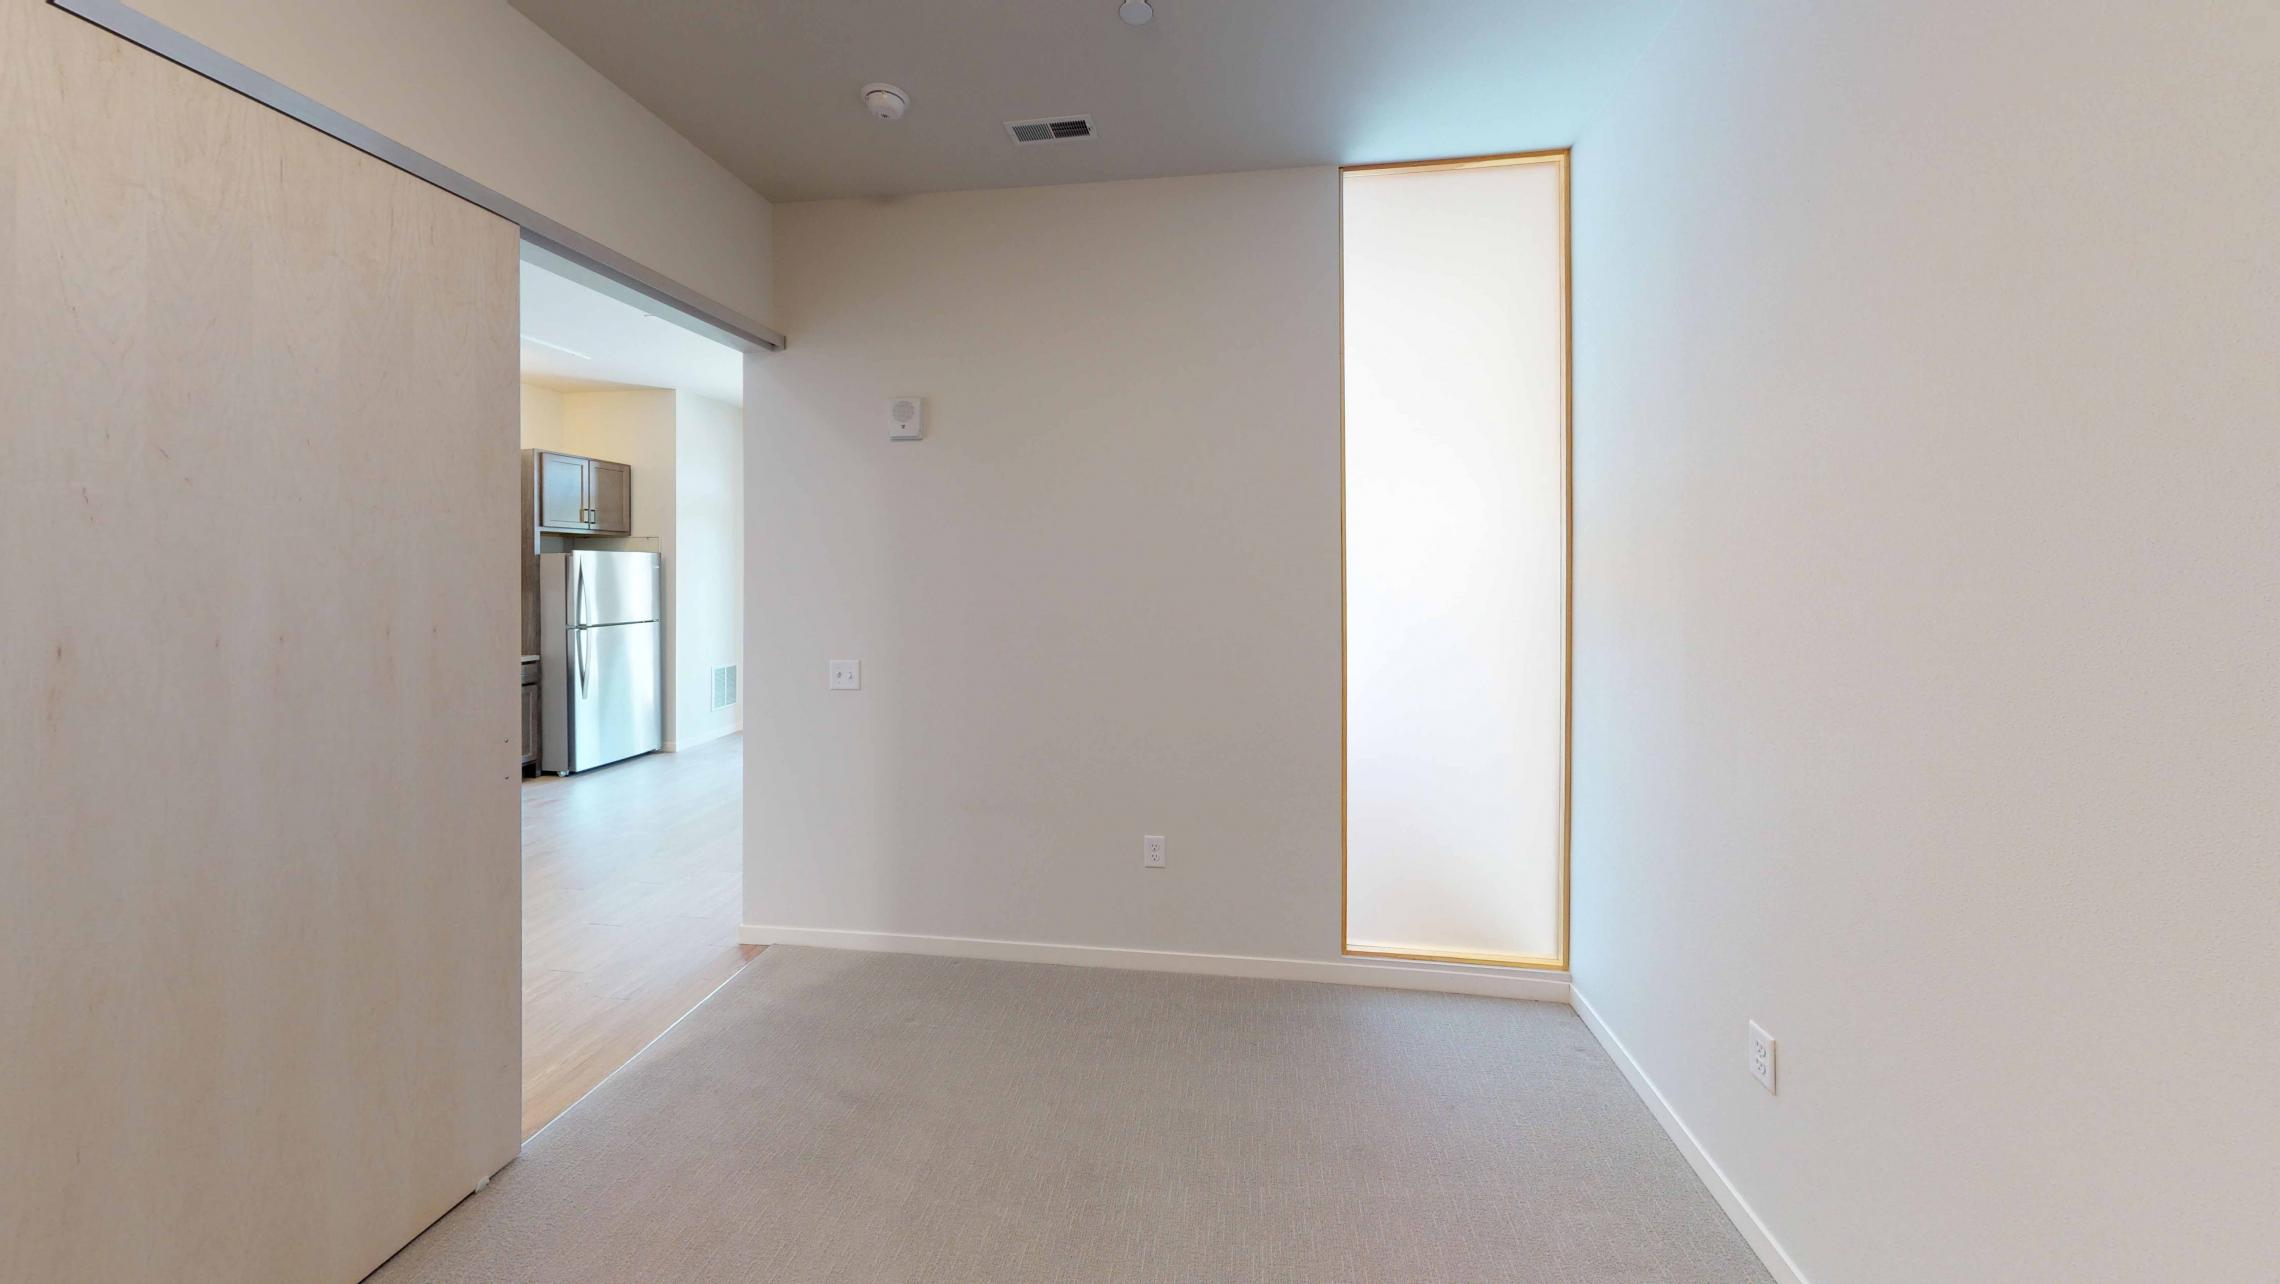 Quarter-Row-Yards-Apartment-109-One-Bedroom-Modern-Upscale-Fitness-Lounge-Courtyard-Downtown-Madison-Balcony-Amenities-Luxury